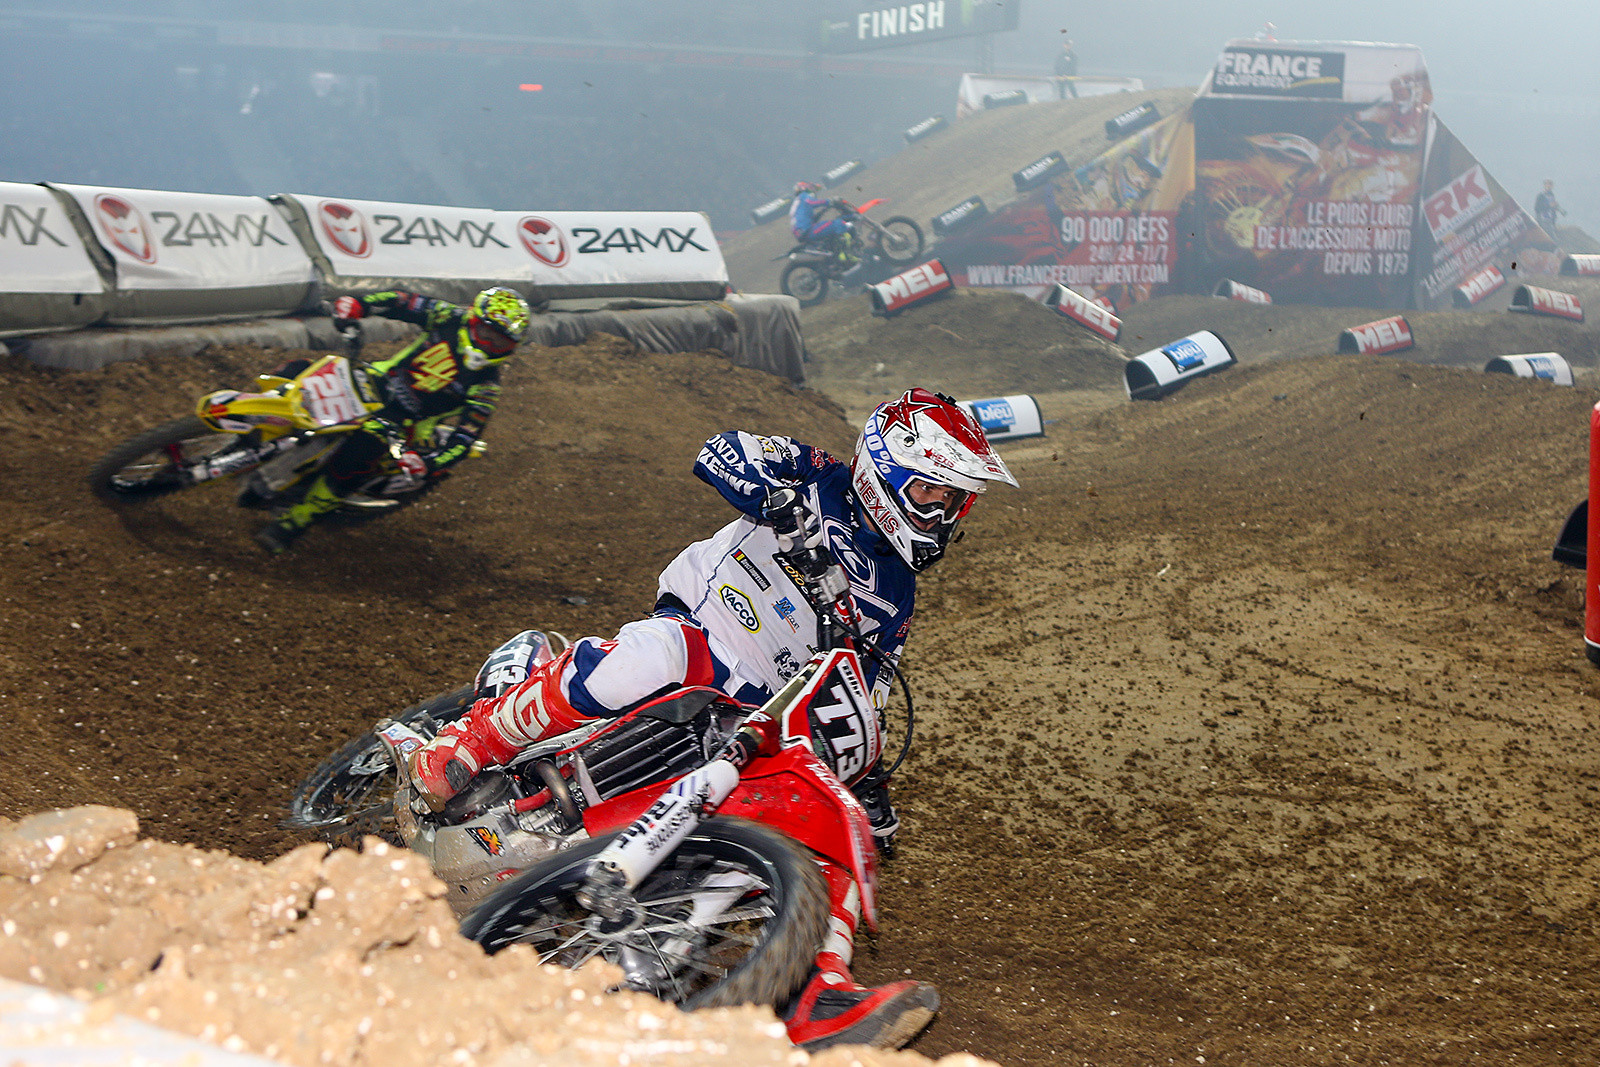 Thomas Do - Photo Gallery: Paris-Lille Supercross, Day 2 - Motocross Pictures - Vital MX